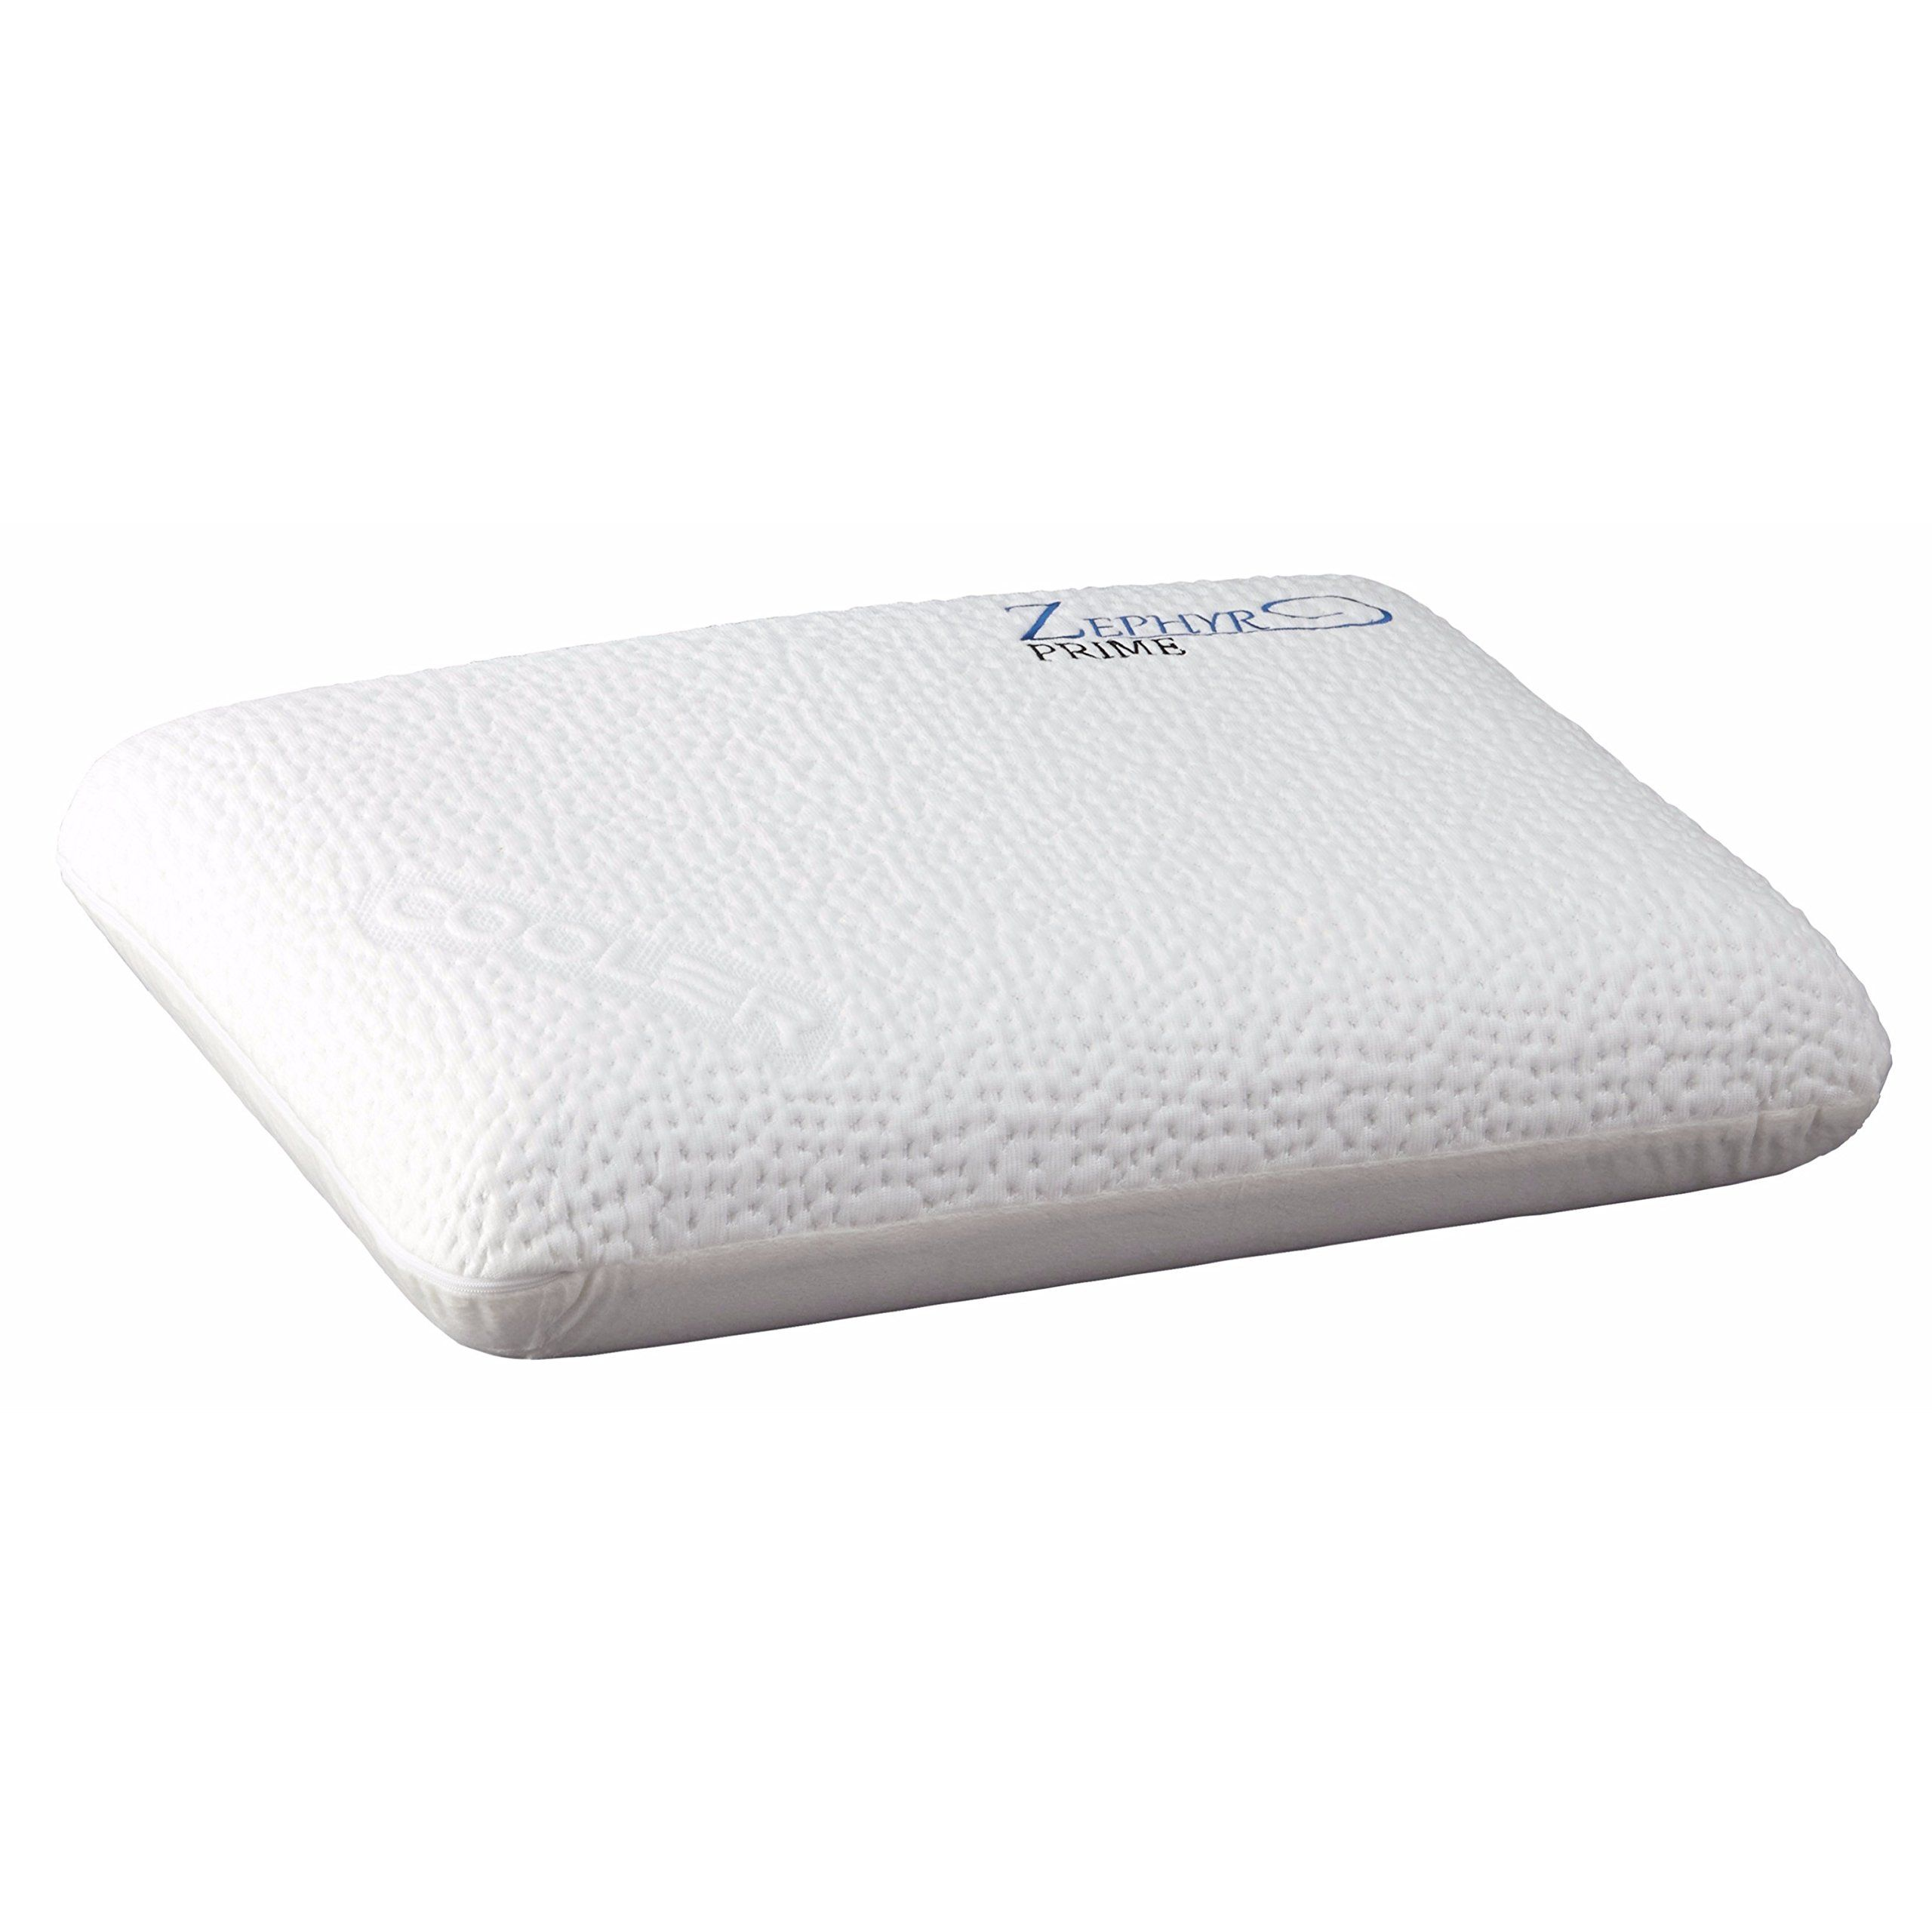 foam the therapeutic and horseshoe place water more tens pillow memory back chiropractic pillows